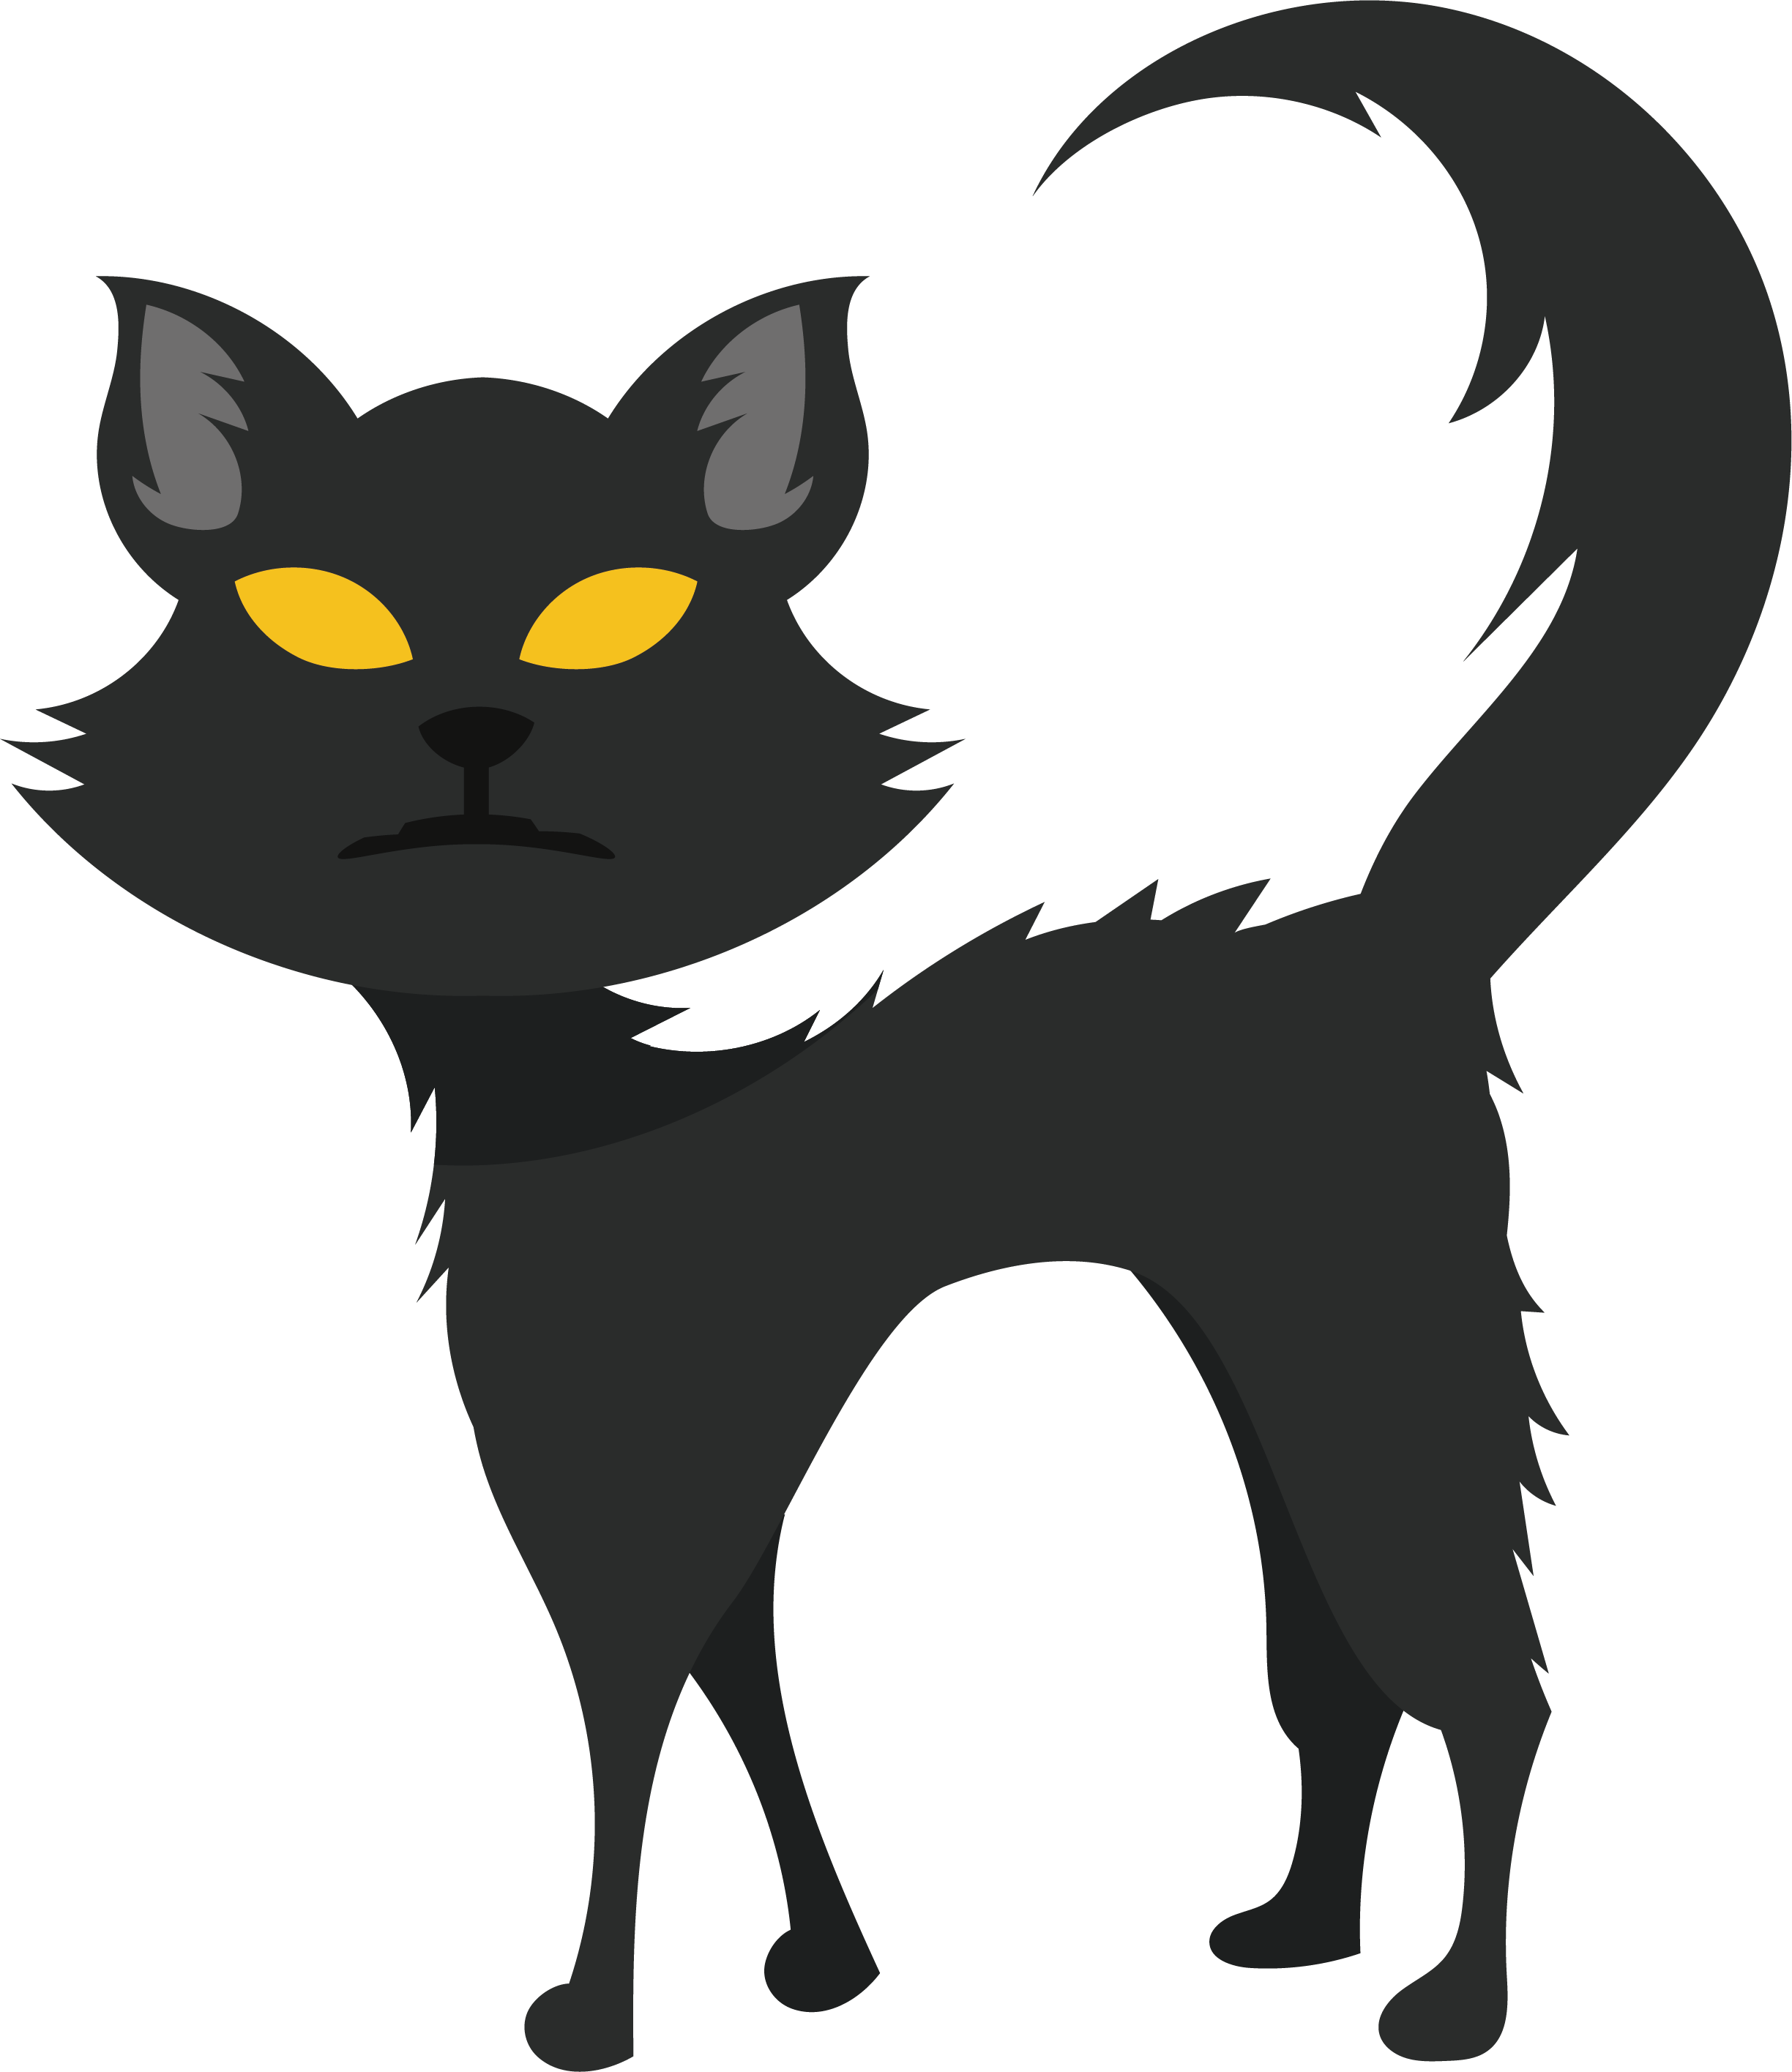 Black cat whiskers clipart vector free library Black cat Kitten Whiskers Domestic short-haired cat - Horrible black ... vector free library